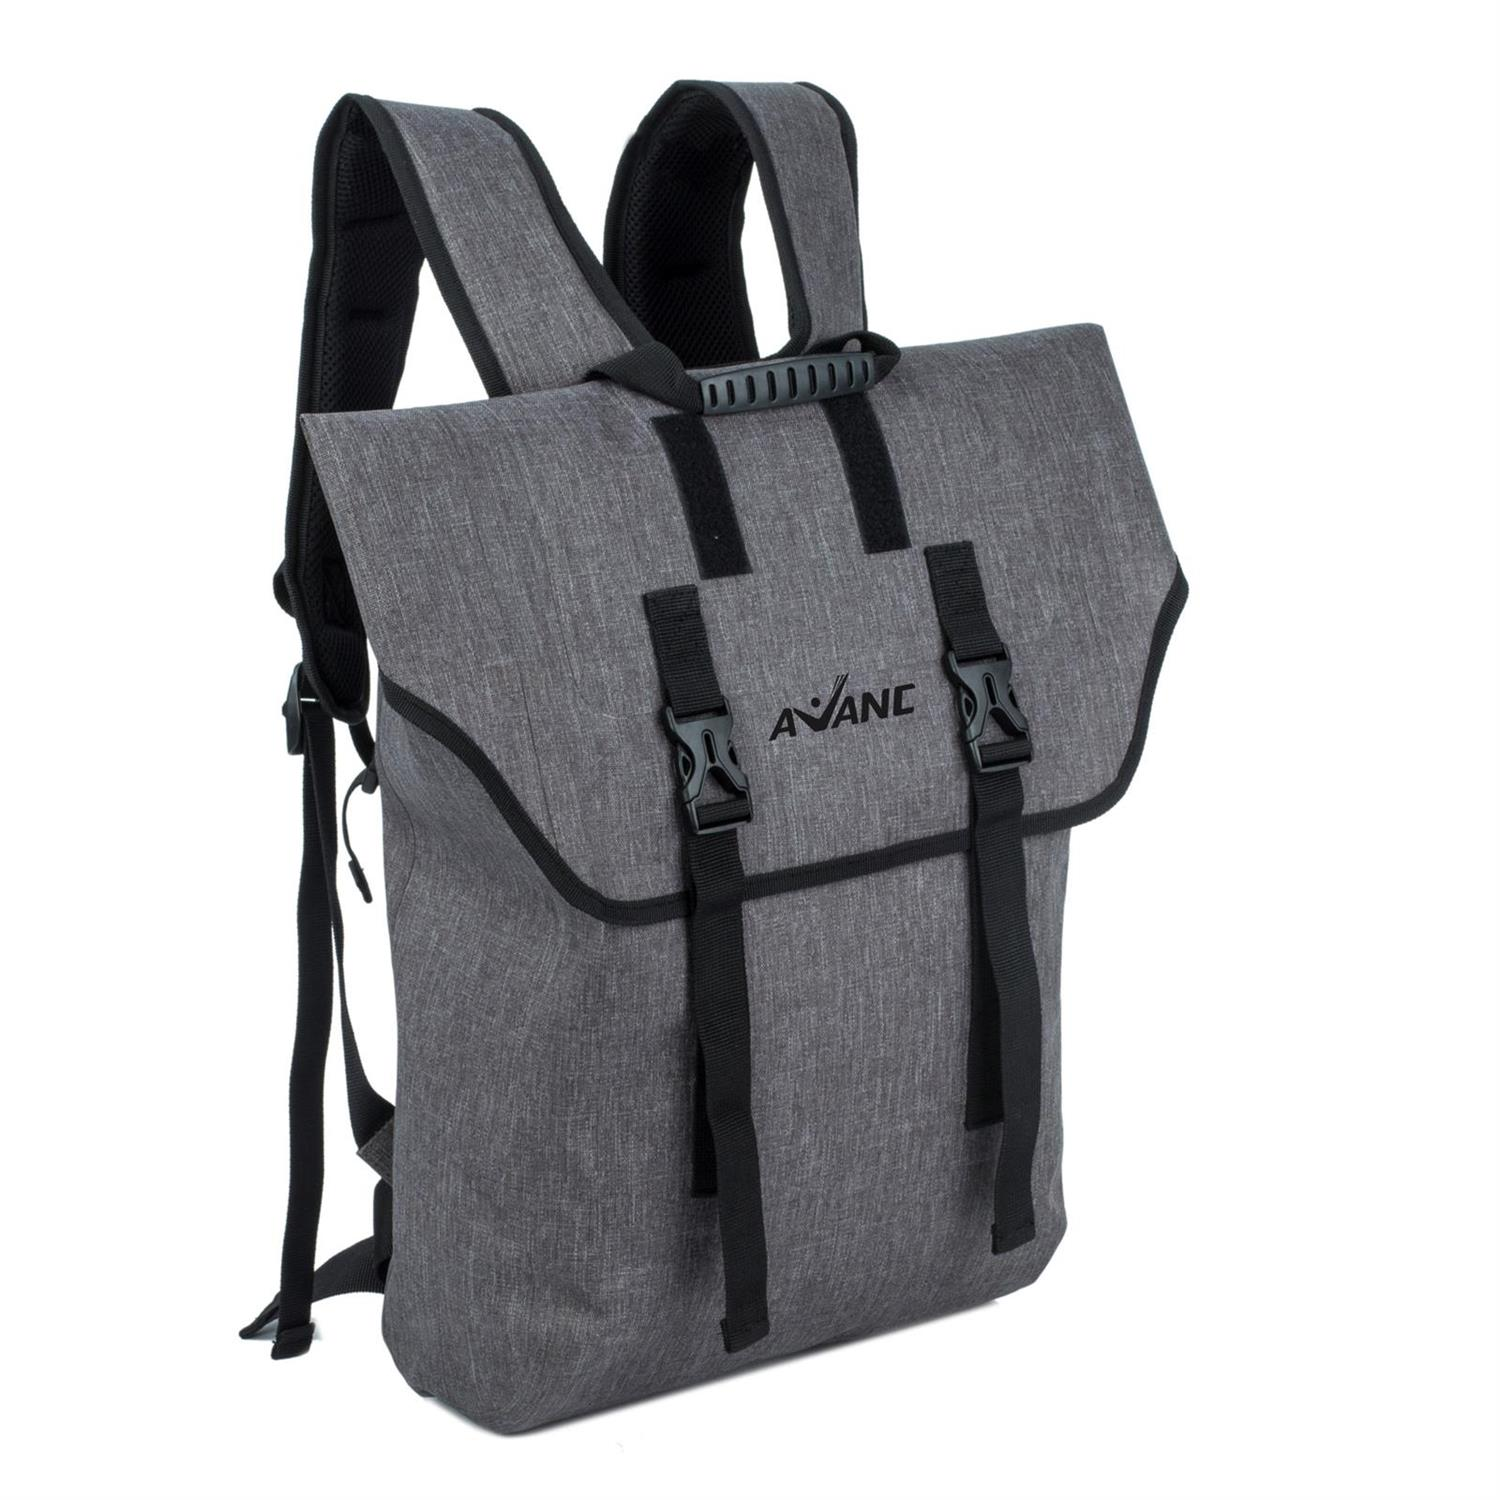 Extreme  SPACE GREY Classic School Bag, Waterproof daypack 20L